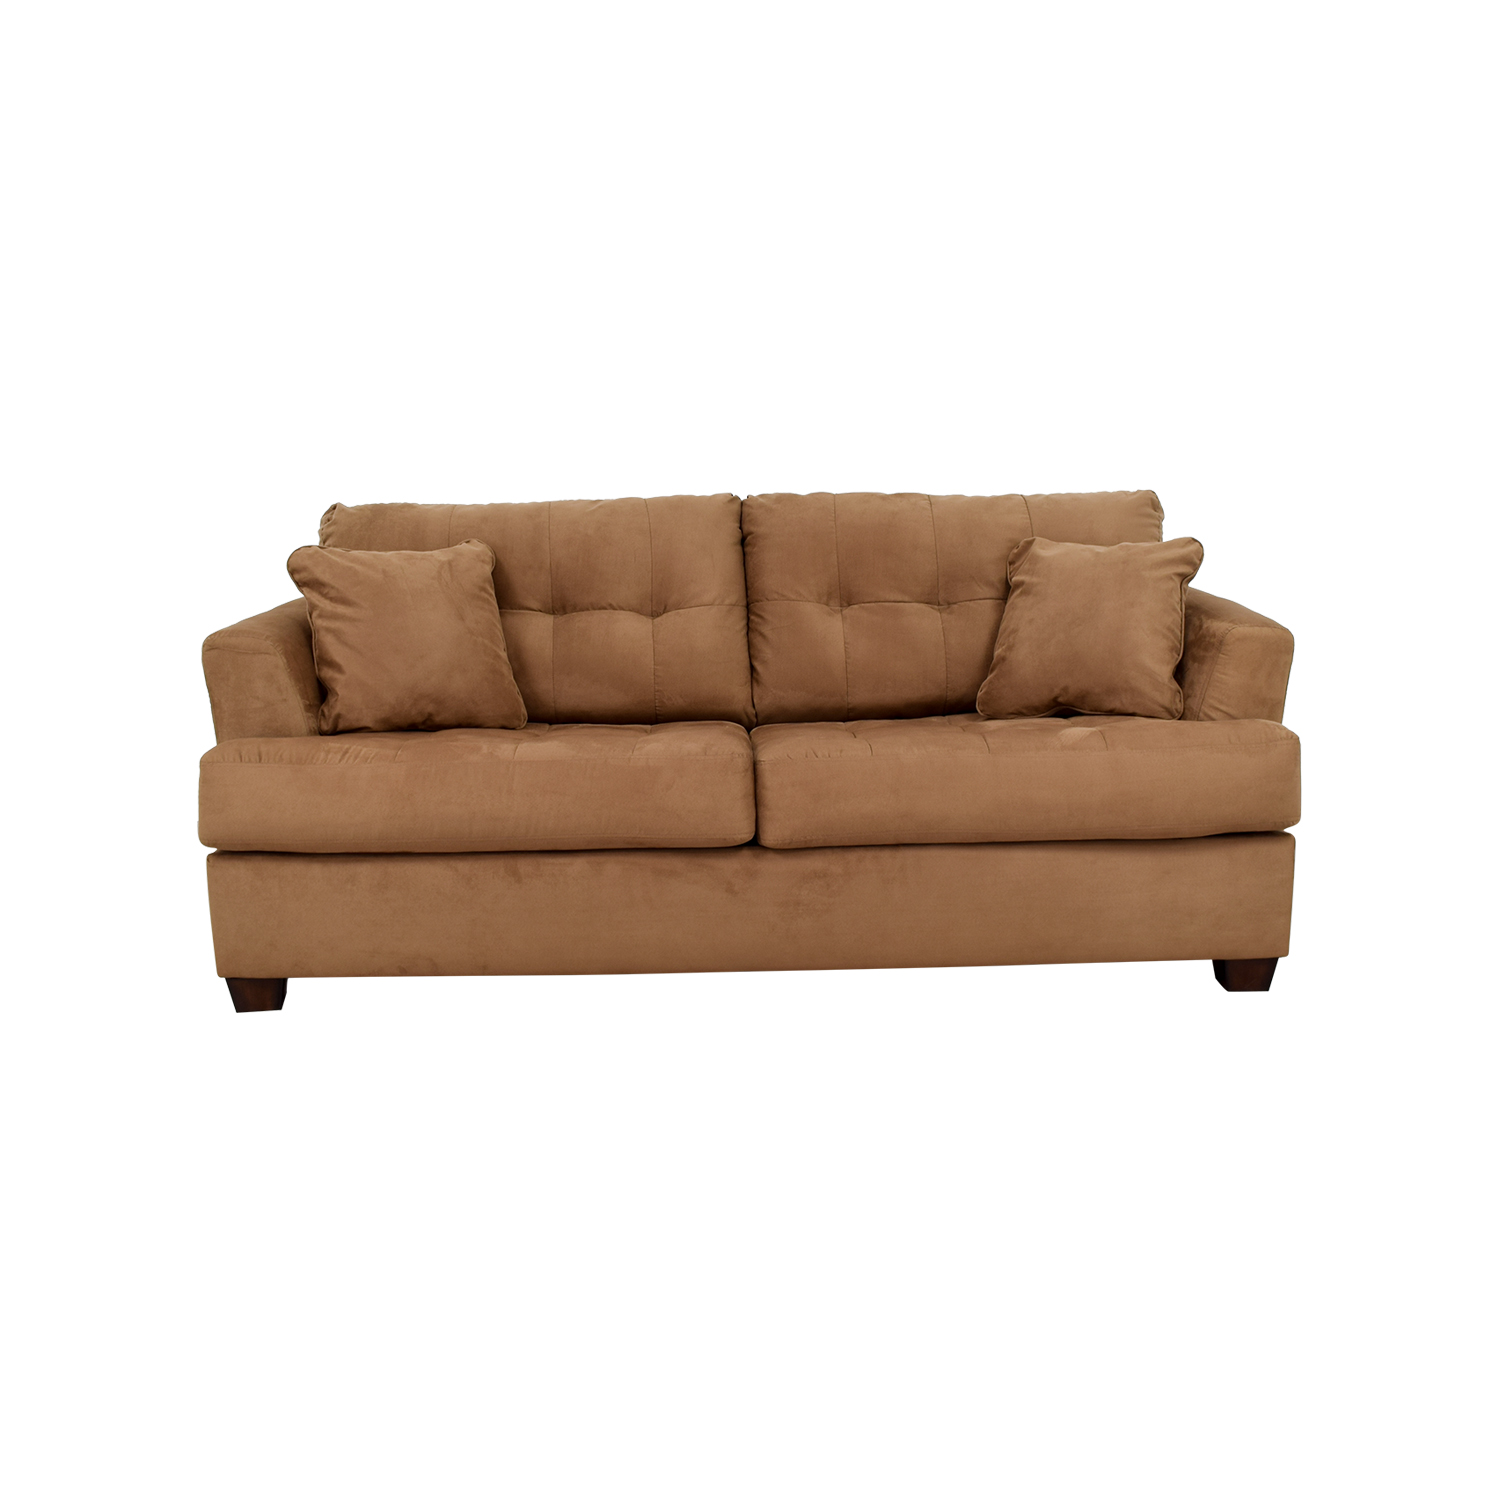 Ashley Convertible Sofa Sofas Fabulous Ashley Furniture Gray Couch Leather Thesofa